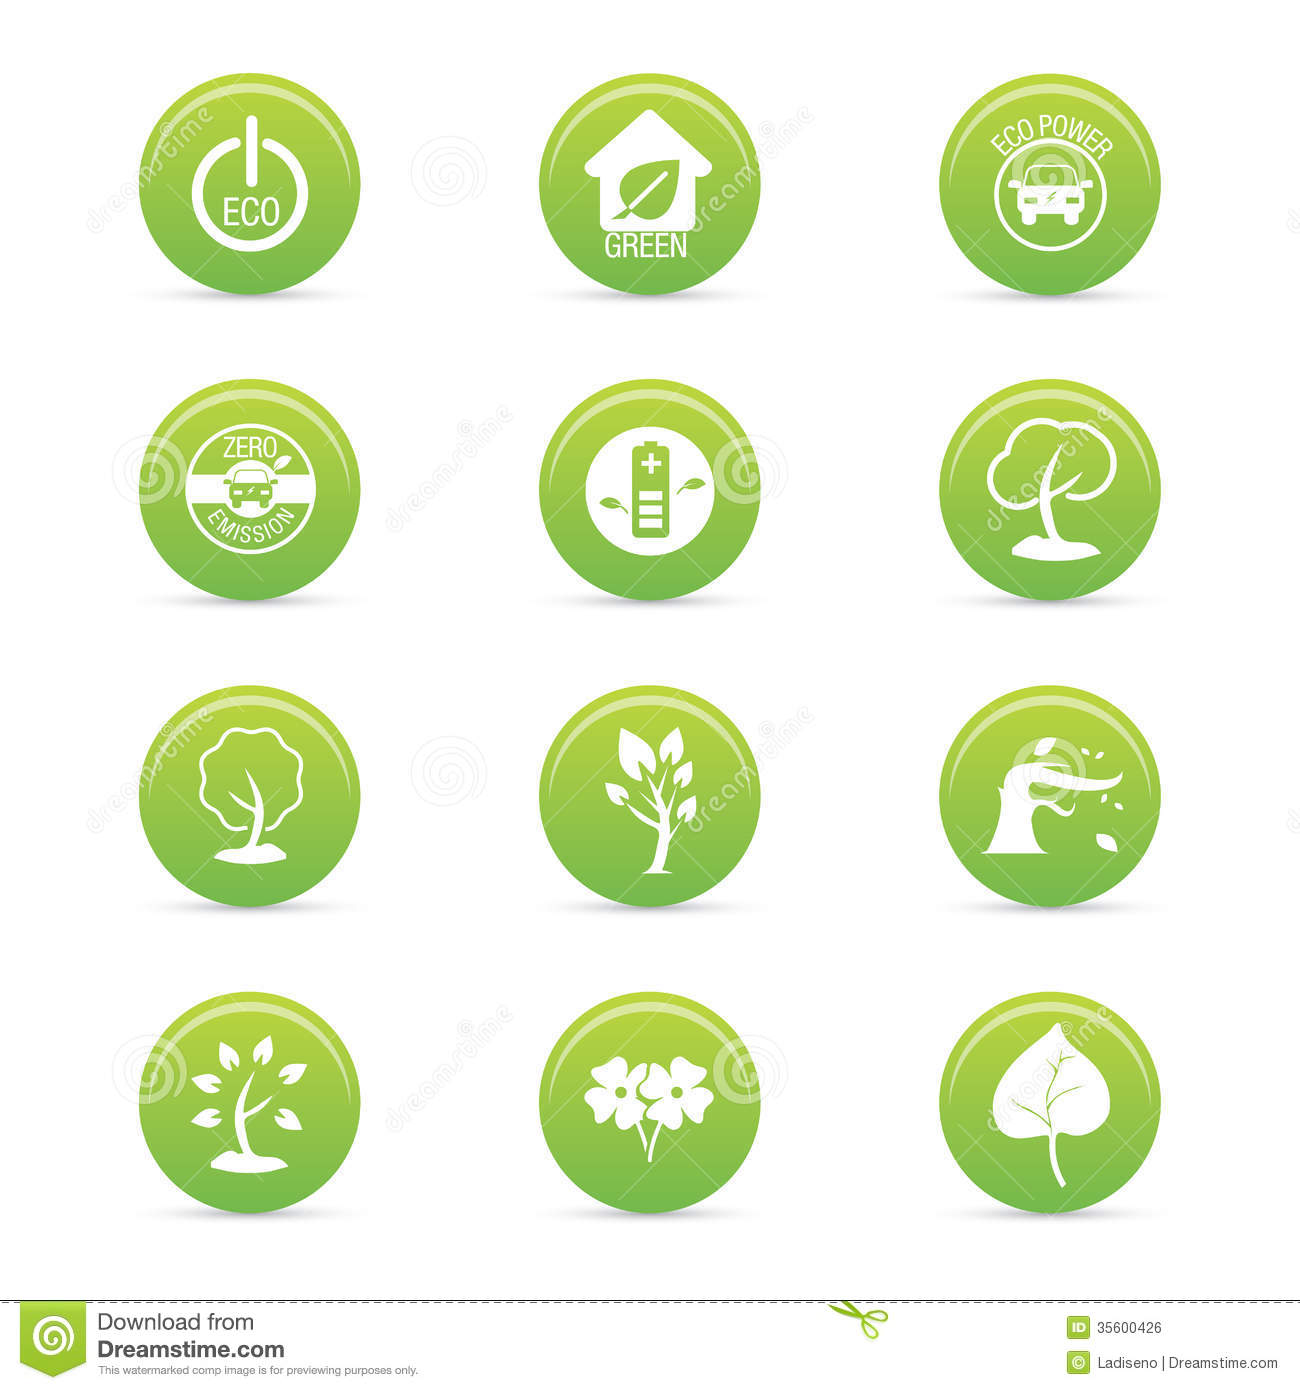 Sustainability Icons Royalty Free Stock Image - Image: 35600426